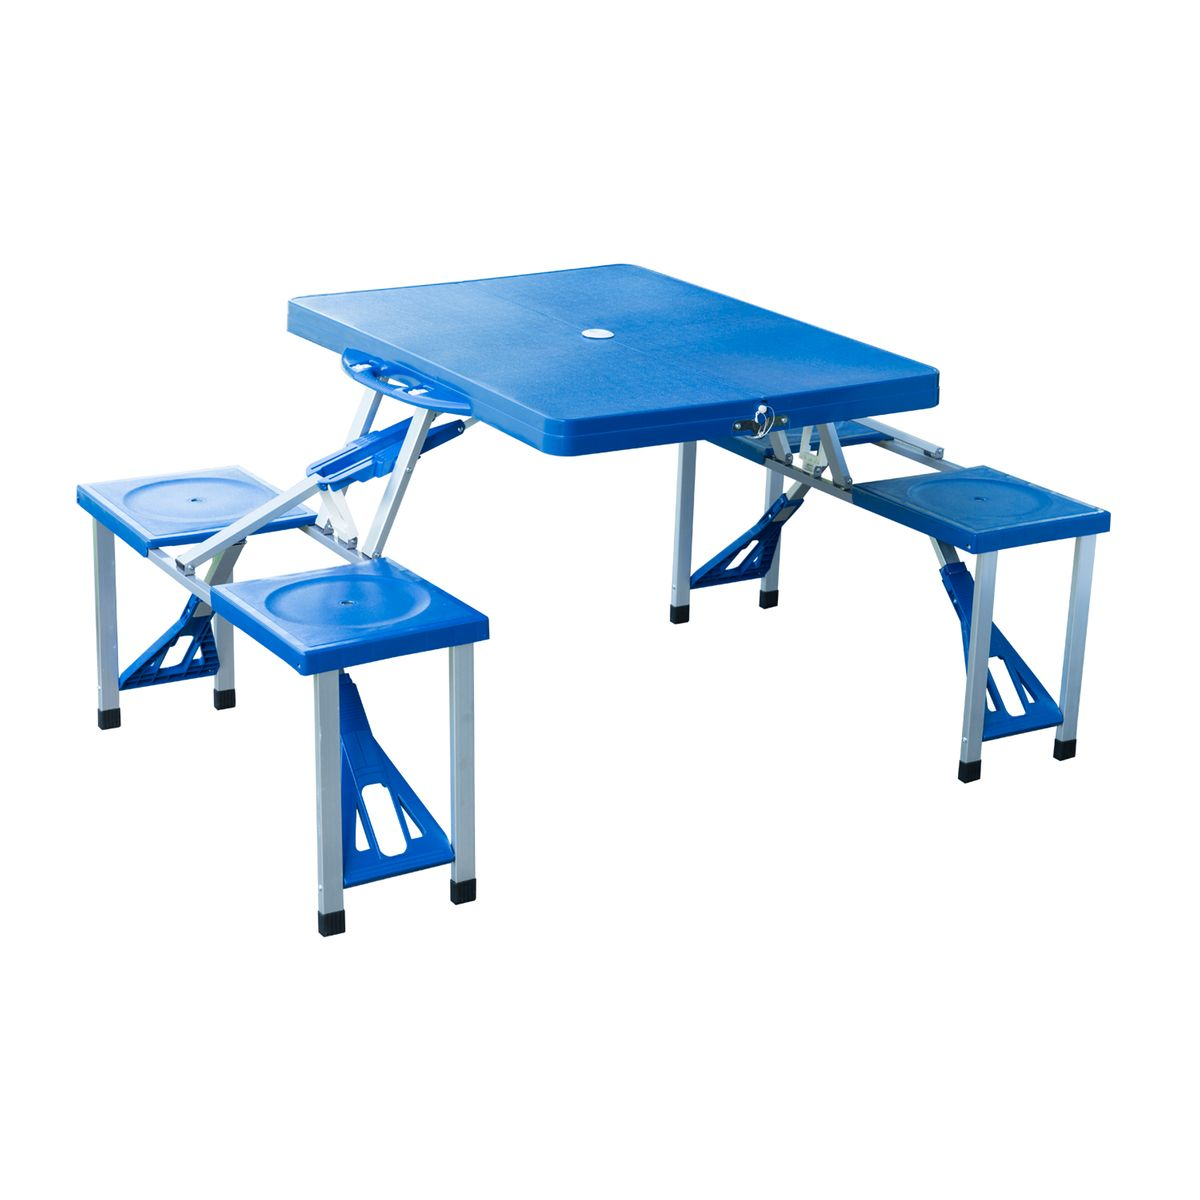 Table de camping pliante valise cheap bien table ronde pliante valise table de camping pliante - Table camping valise ...